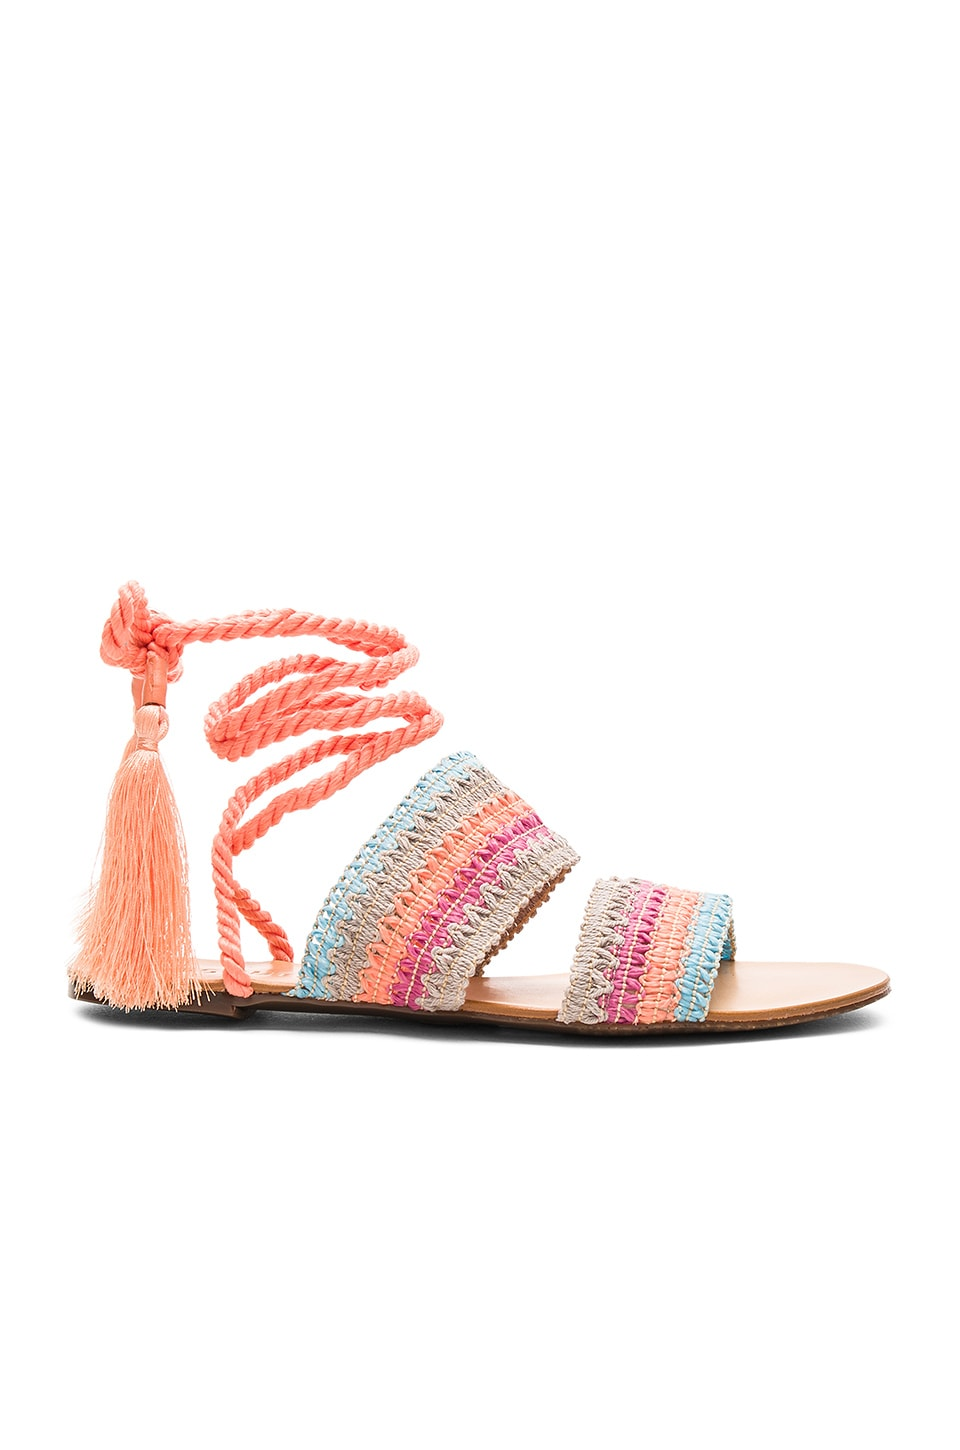 Schutz Zendy Sandal in Multi